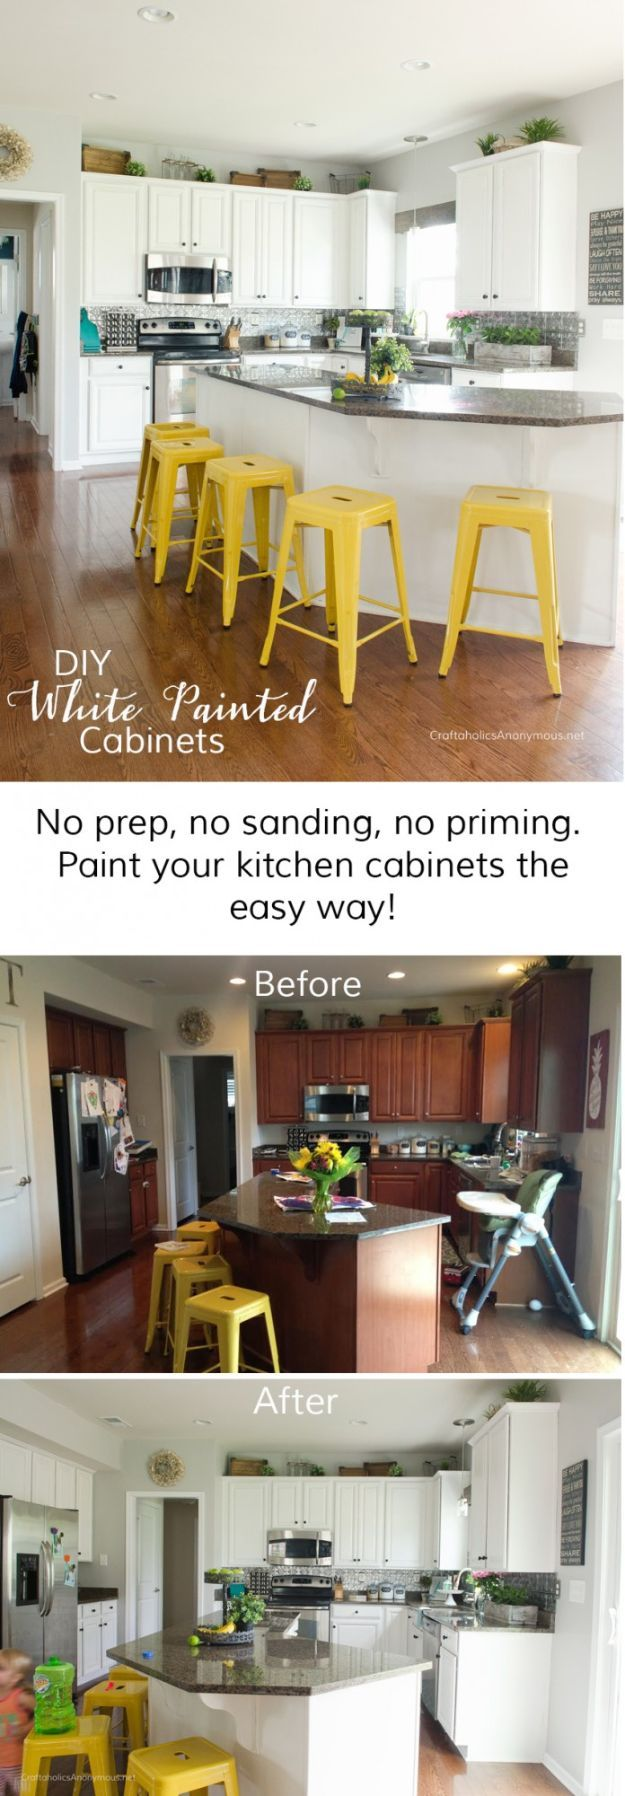 Paint Kitchen Cabinets With Chalk Paint Pictures Photos And Images For Facebook Tumblr Pinterest And Twitter